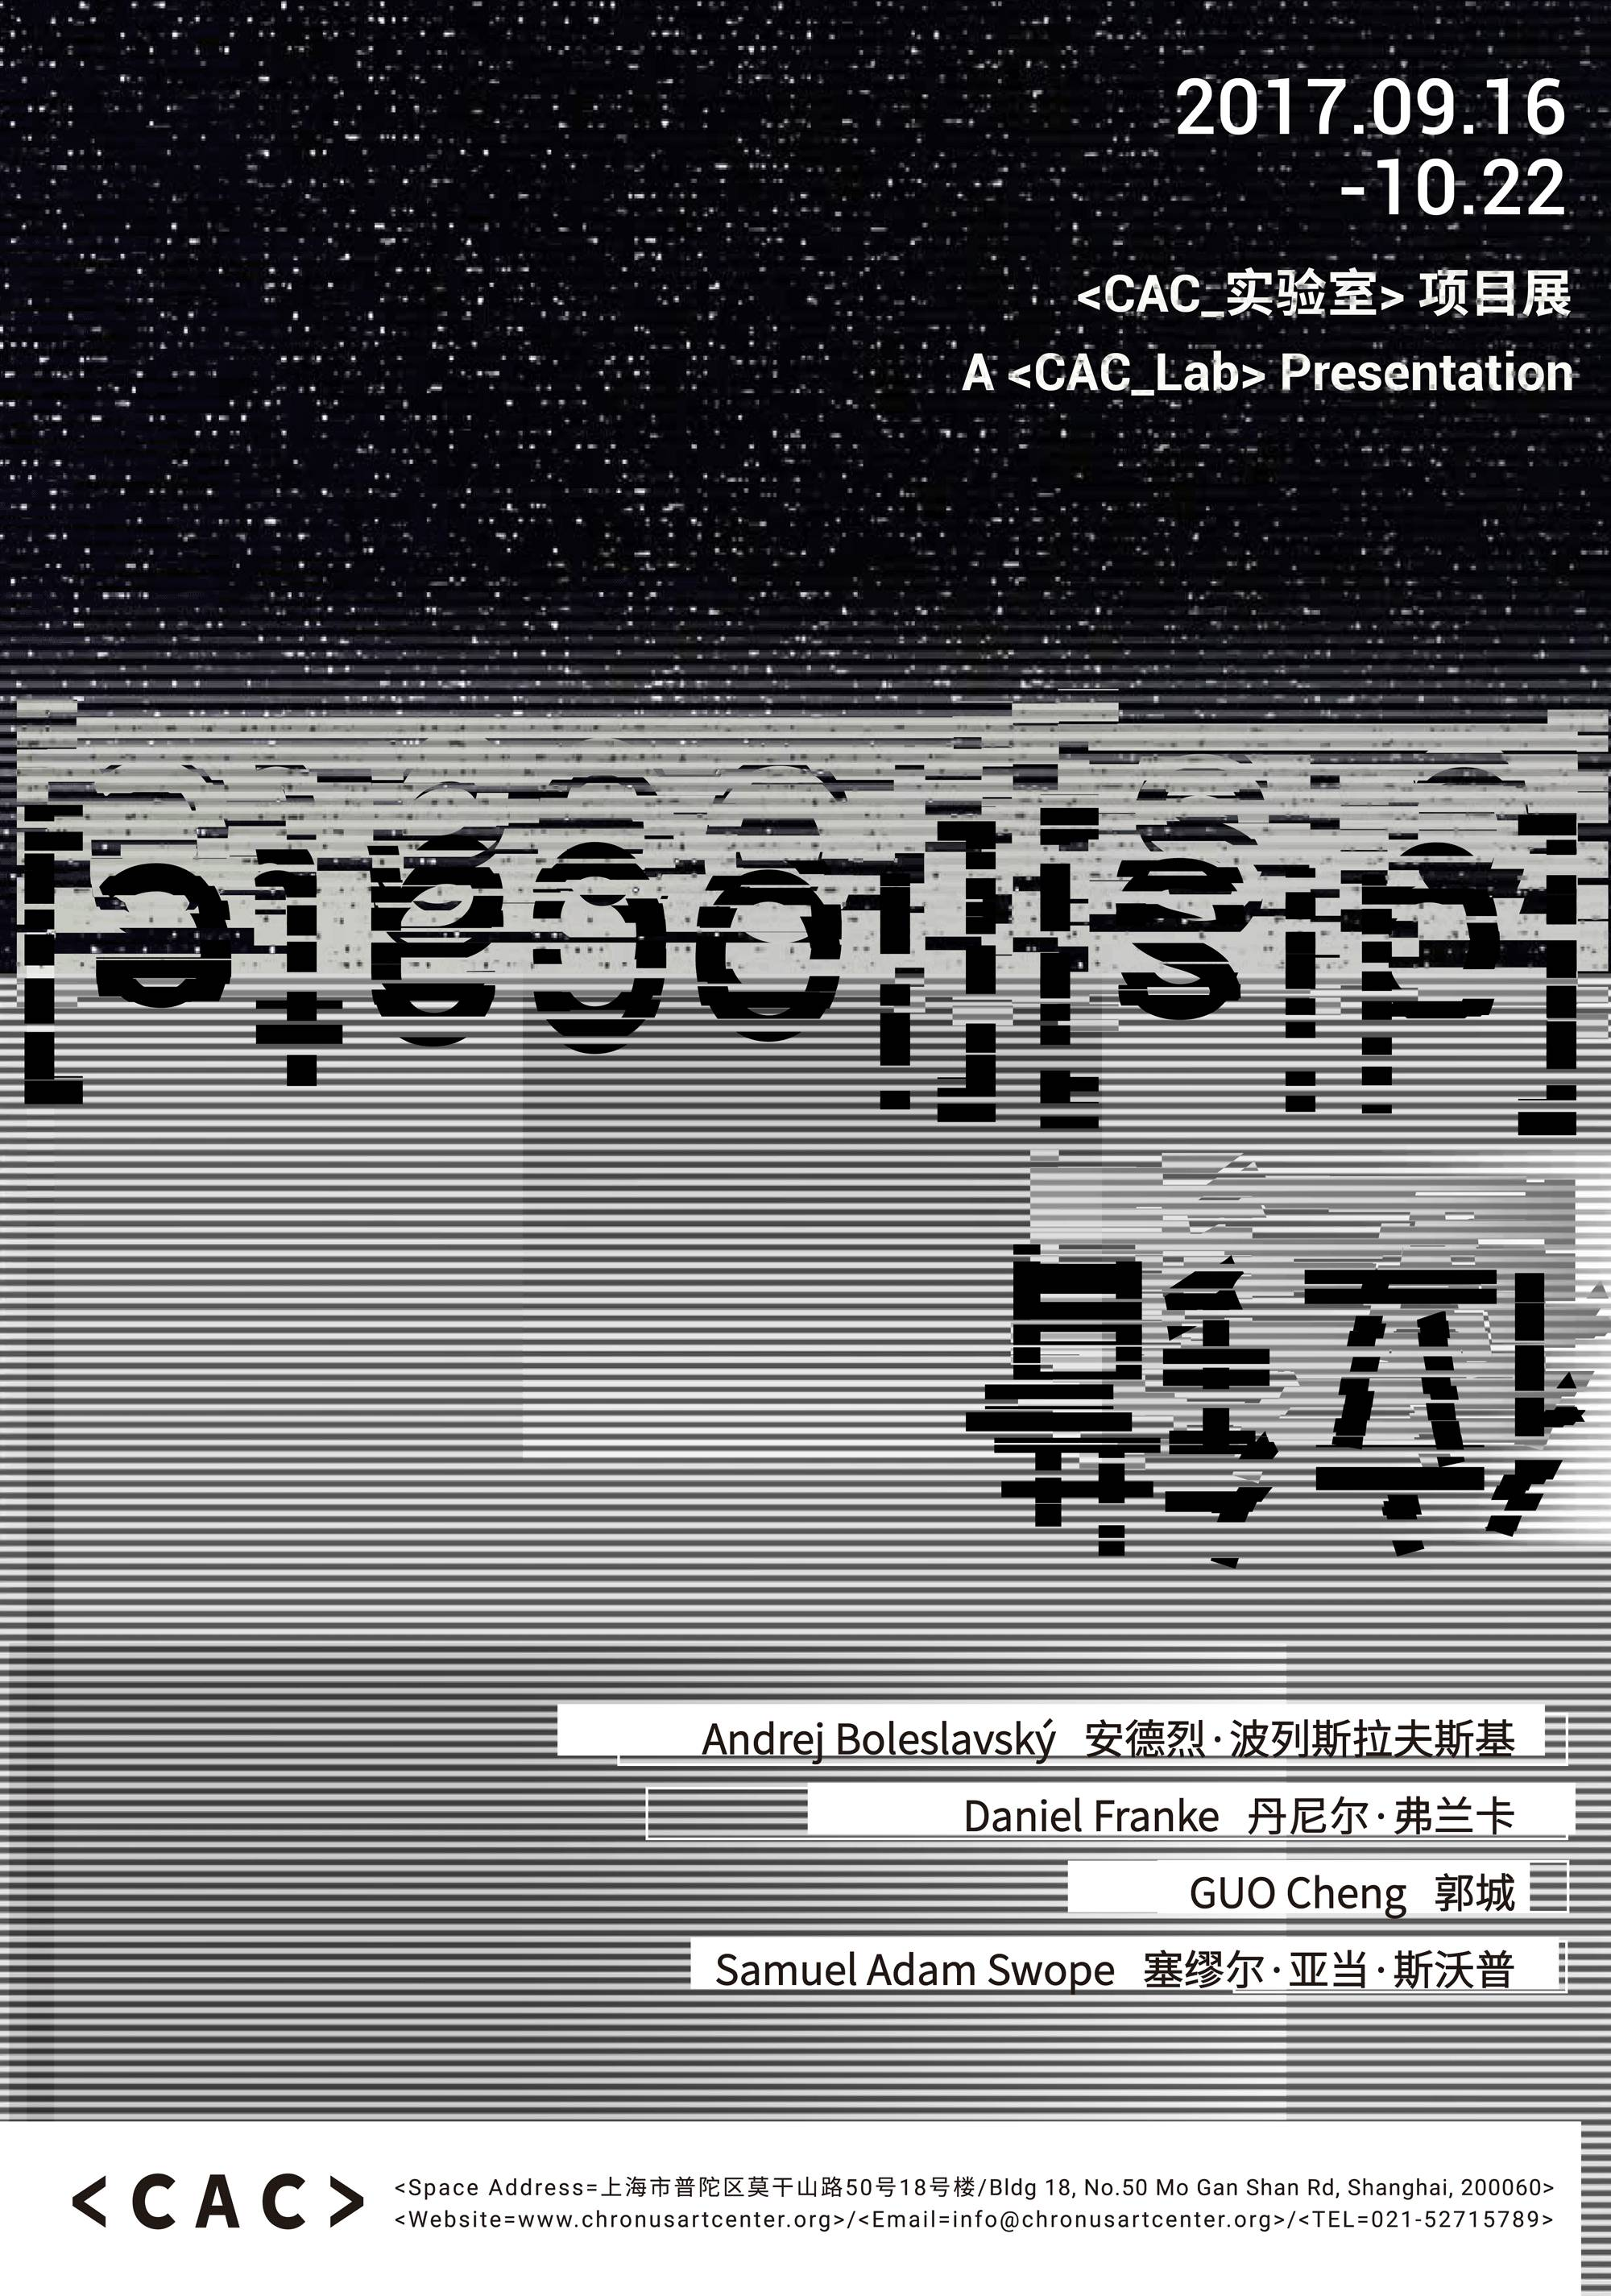 [dis][locate] at the Chronus Art Center in Shanghai, until October 22th 2017.